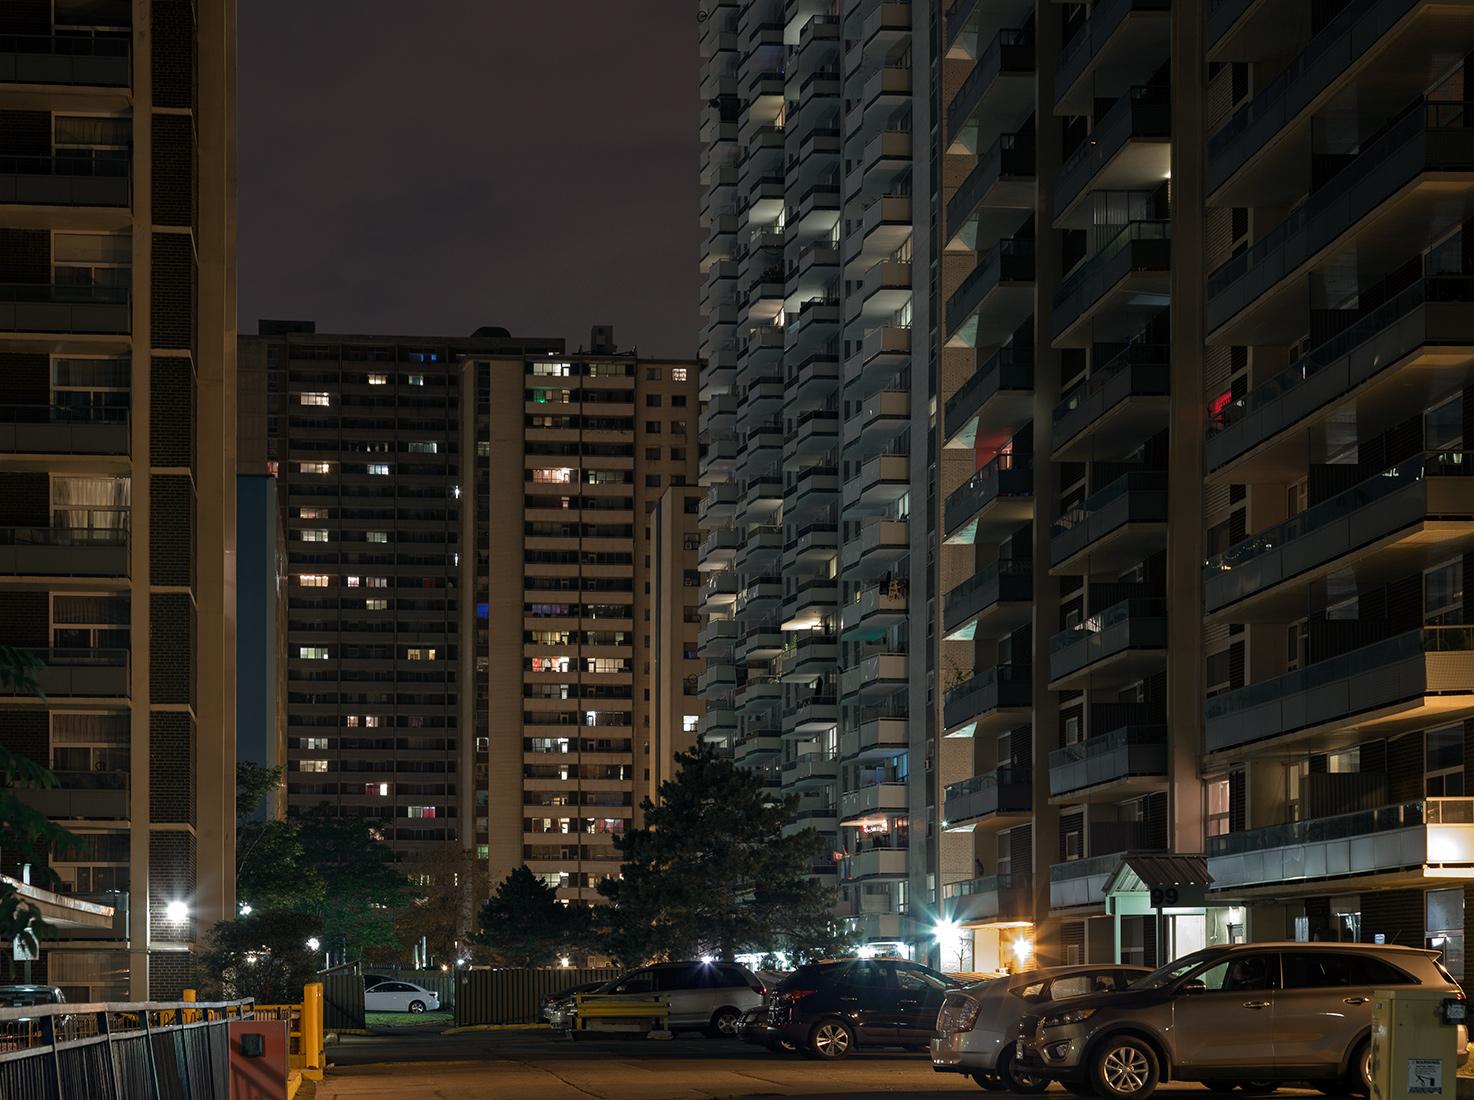 20160811. The towering modernist forms of St. James Town at nigh